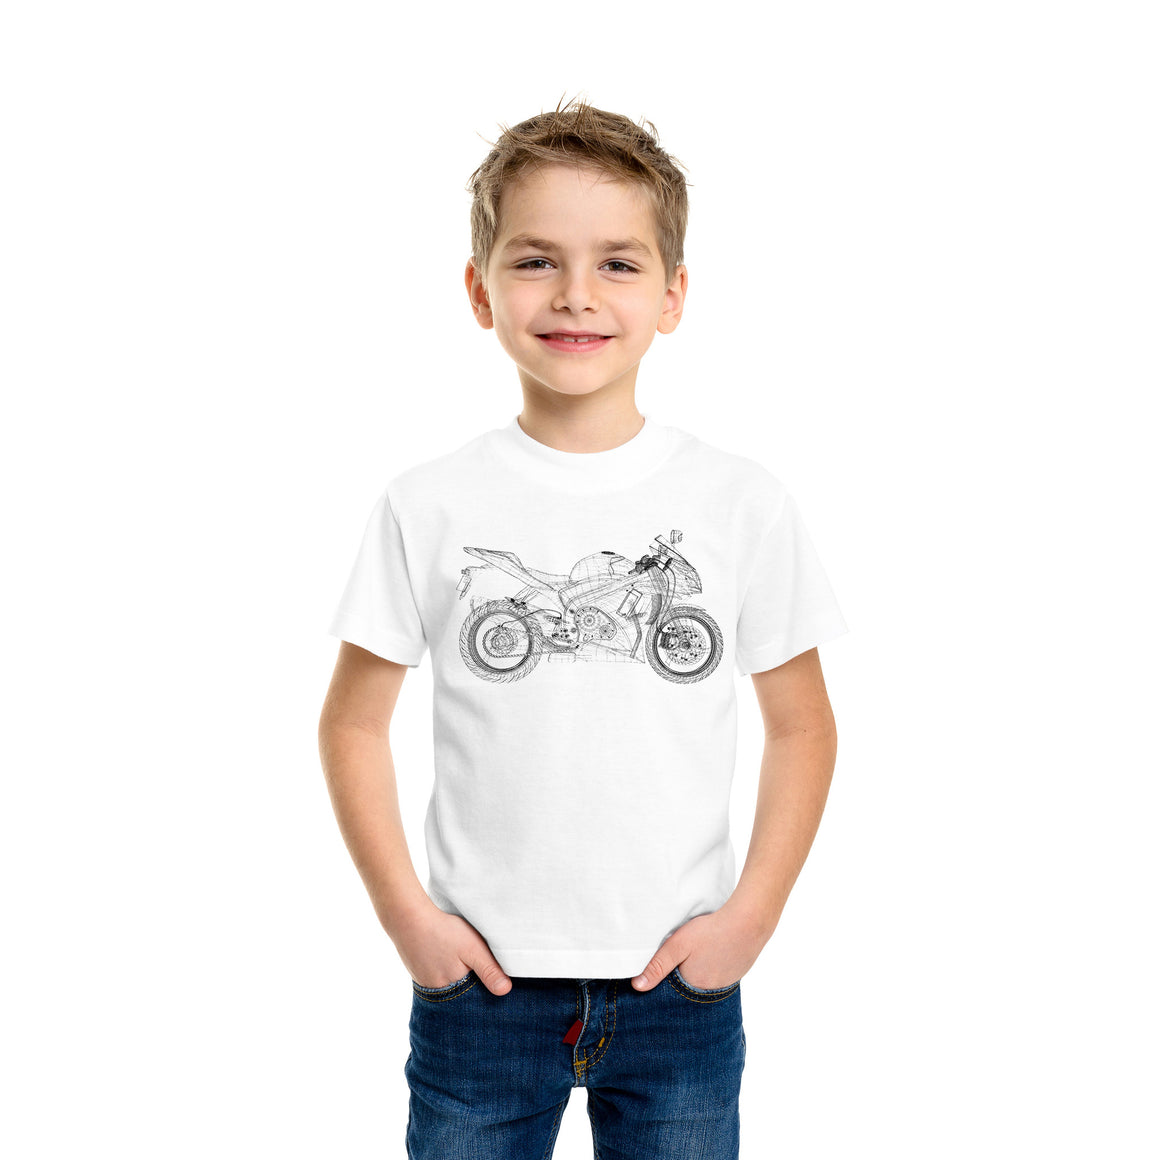 Wireframe Motorcycle Kids T-Shirt